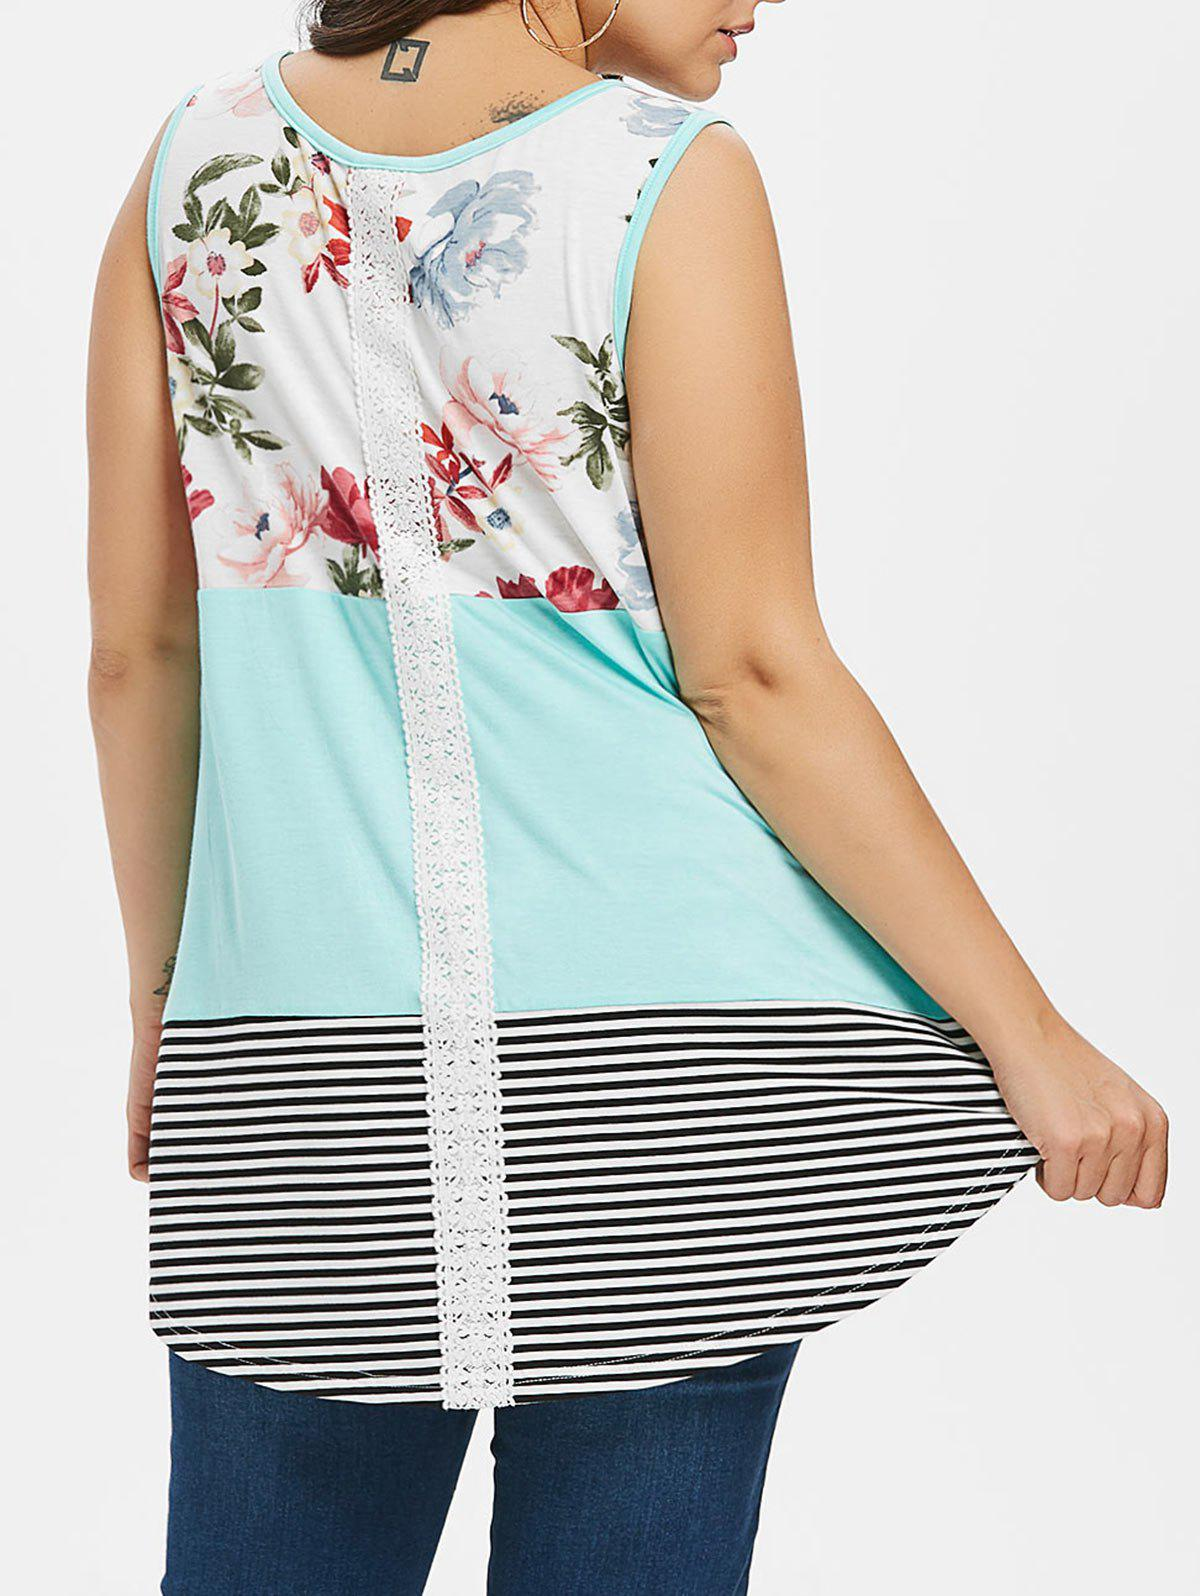 Fashion Floral and Striped Print Plus Size Tank Top